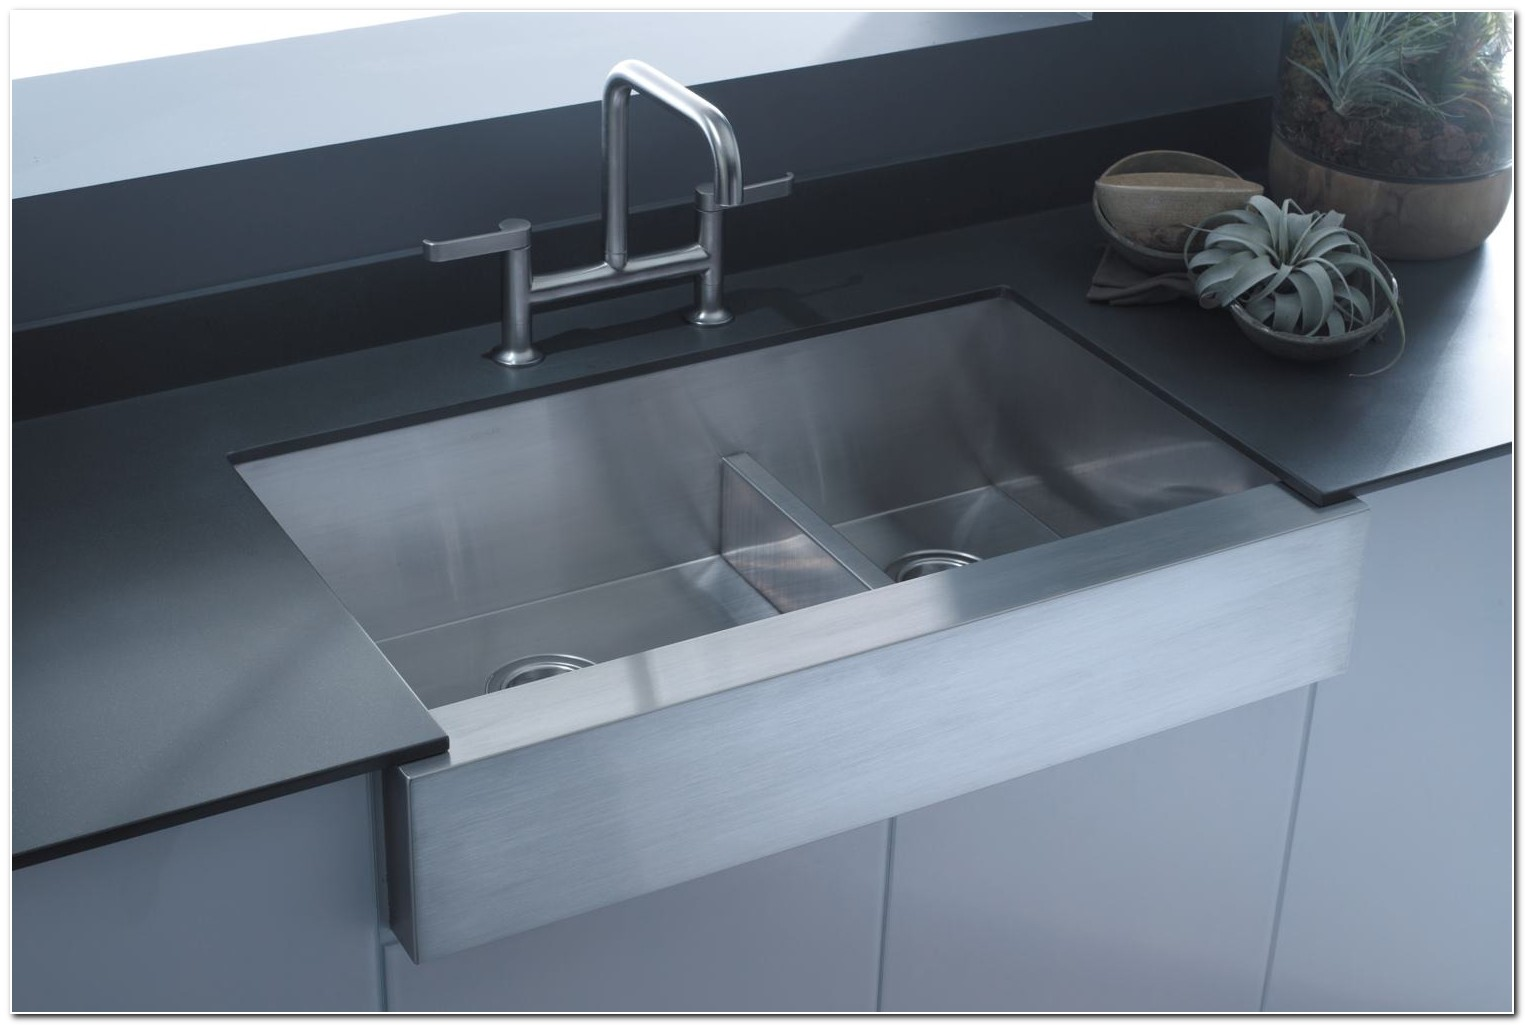 24 Stainless Steel Apron Front Sink